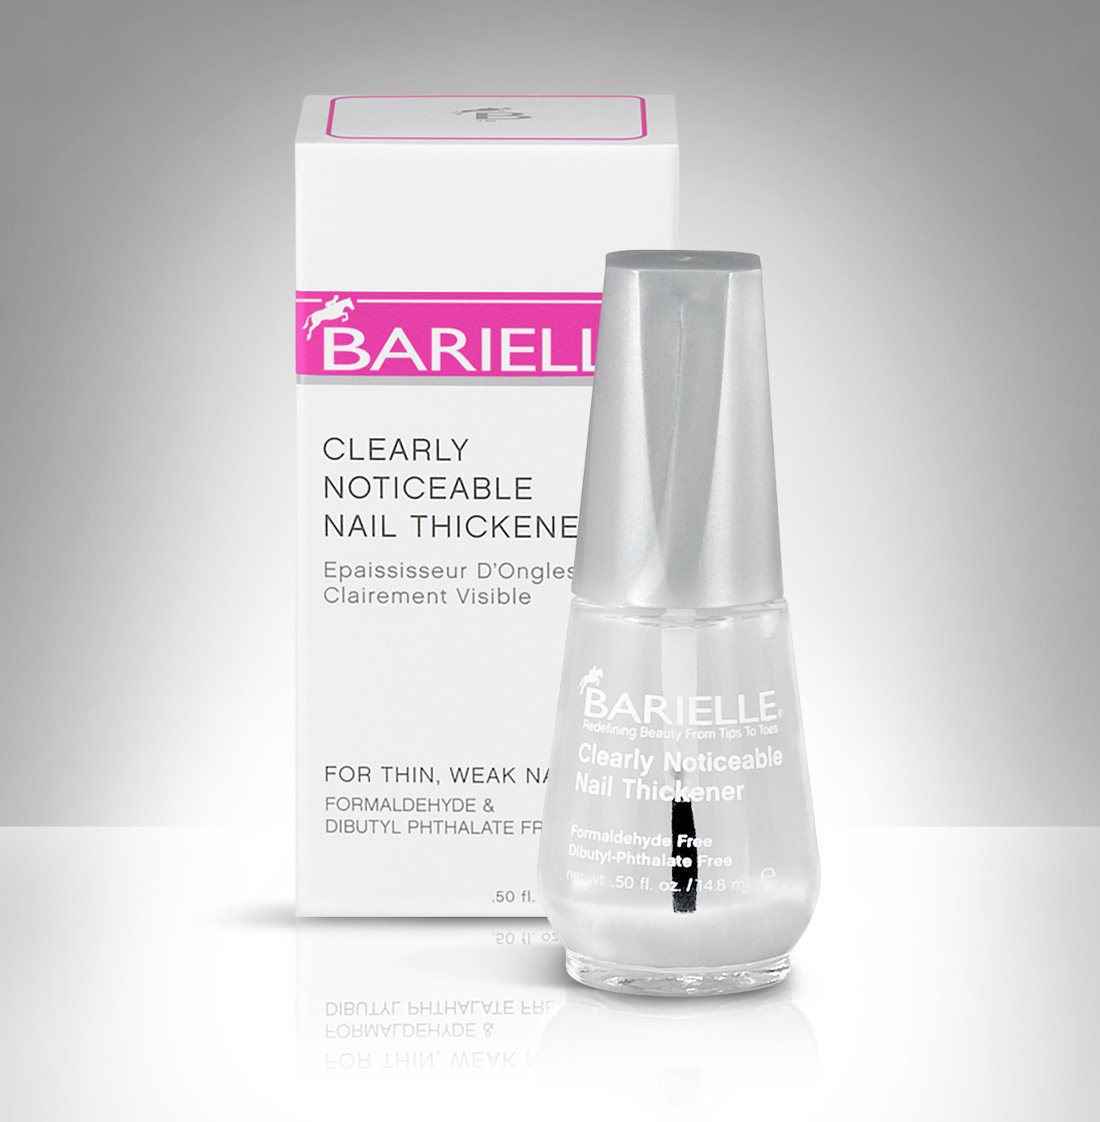 Barielle protect plus color nail strengthener nail polish - pink images